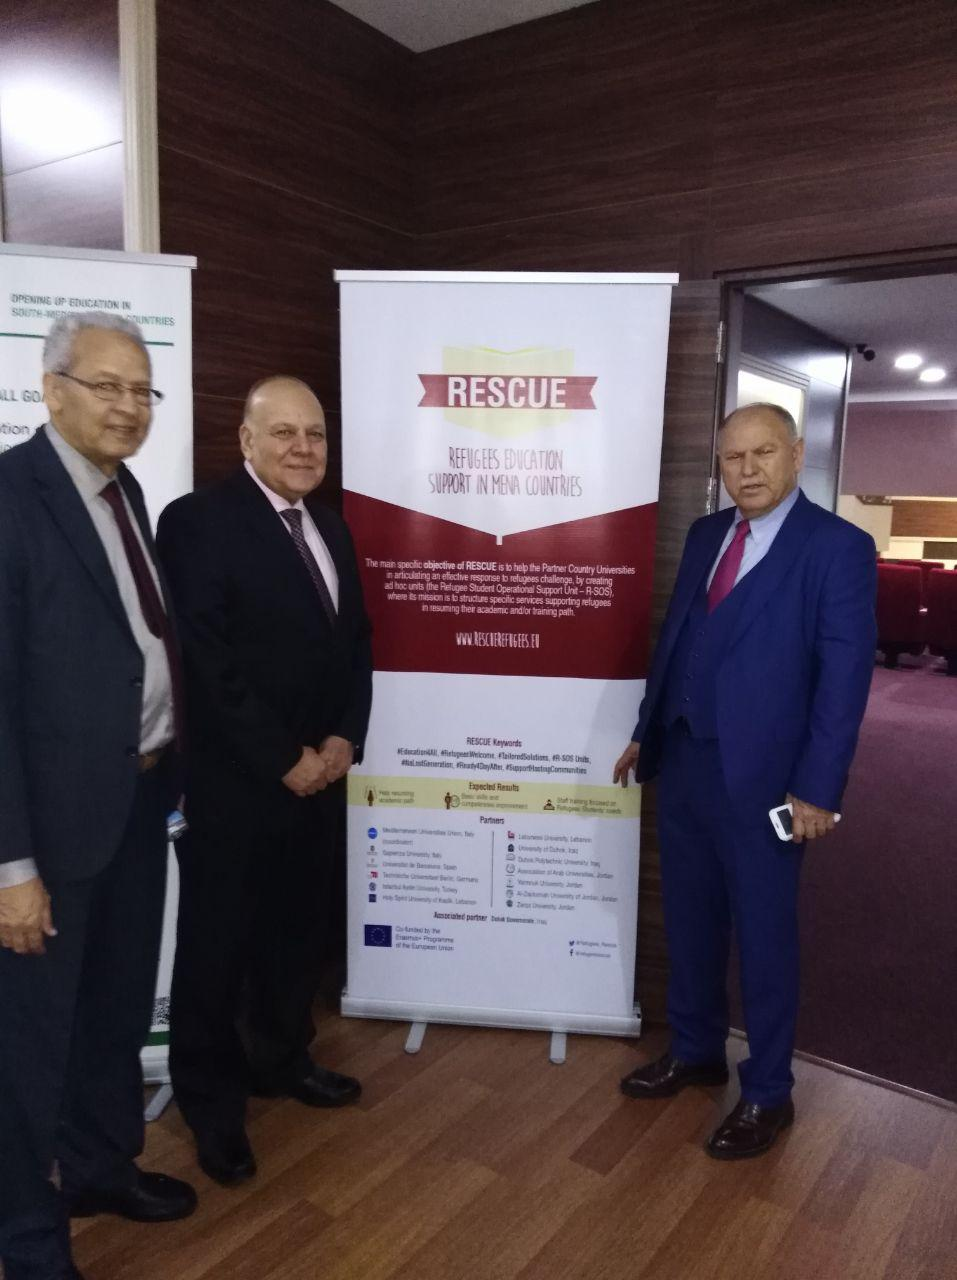 DISSEMINATING RESCUE AT THE FIRST FORUM OF THE FEDERATION OF RUSSIAN AND ARAB UNIVERSITY RECTORS